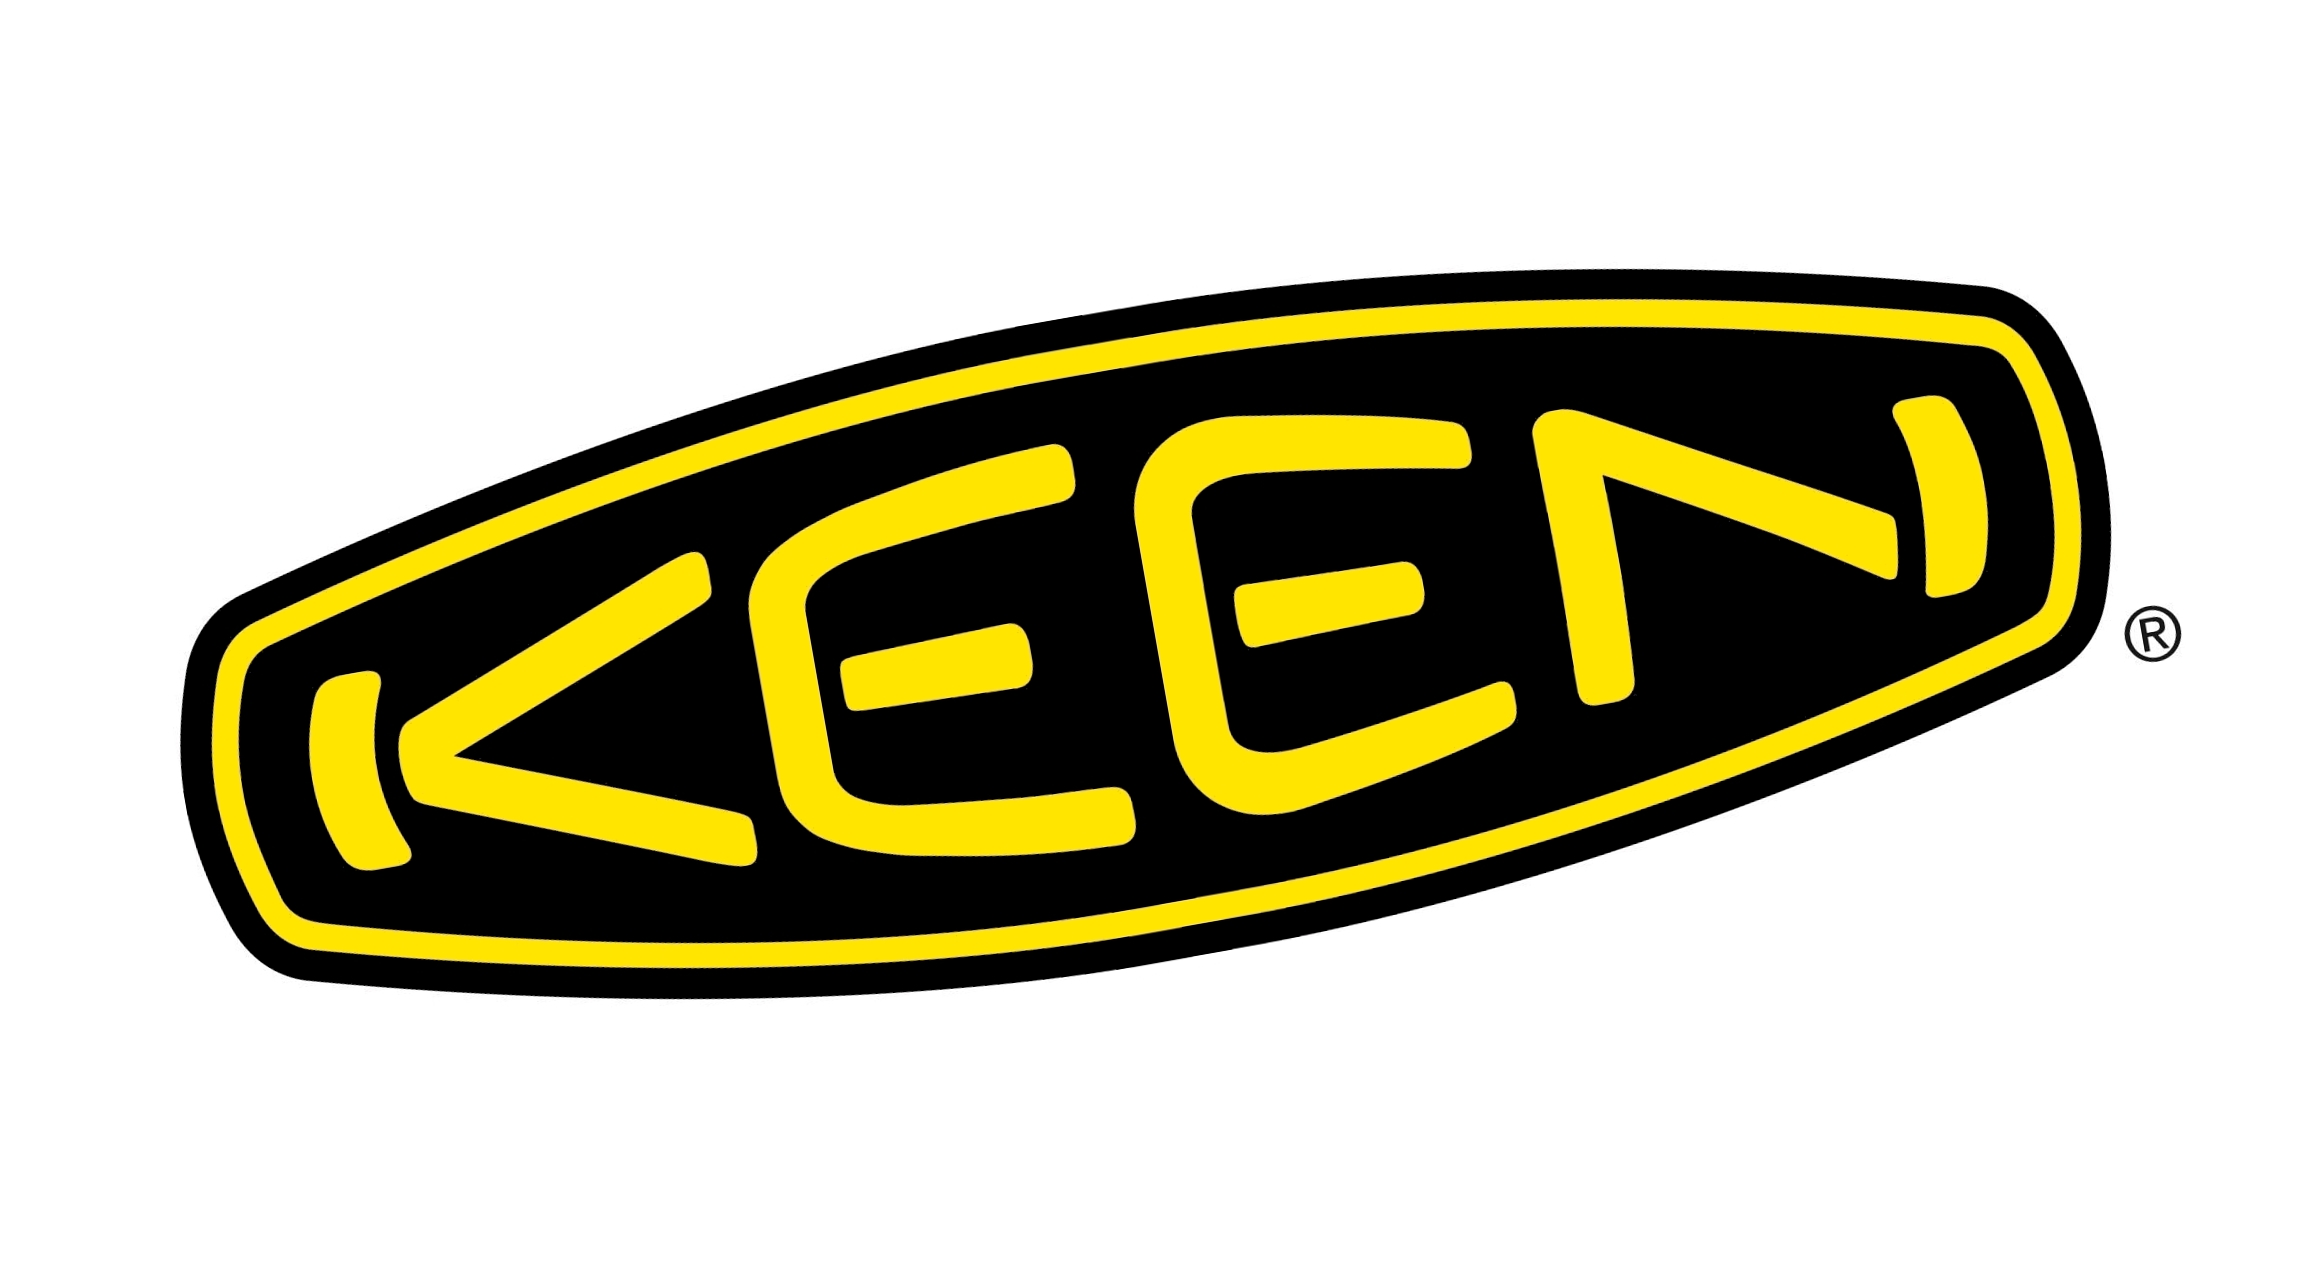 Keen logo, emblem, rotated